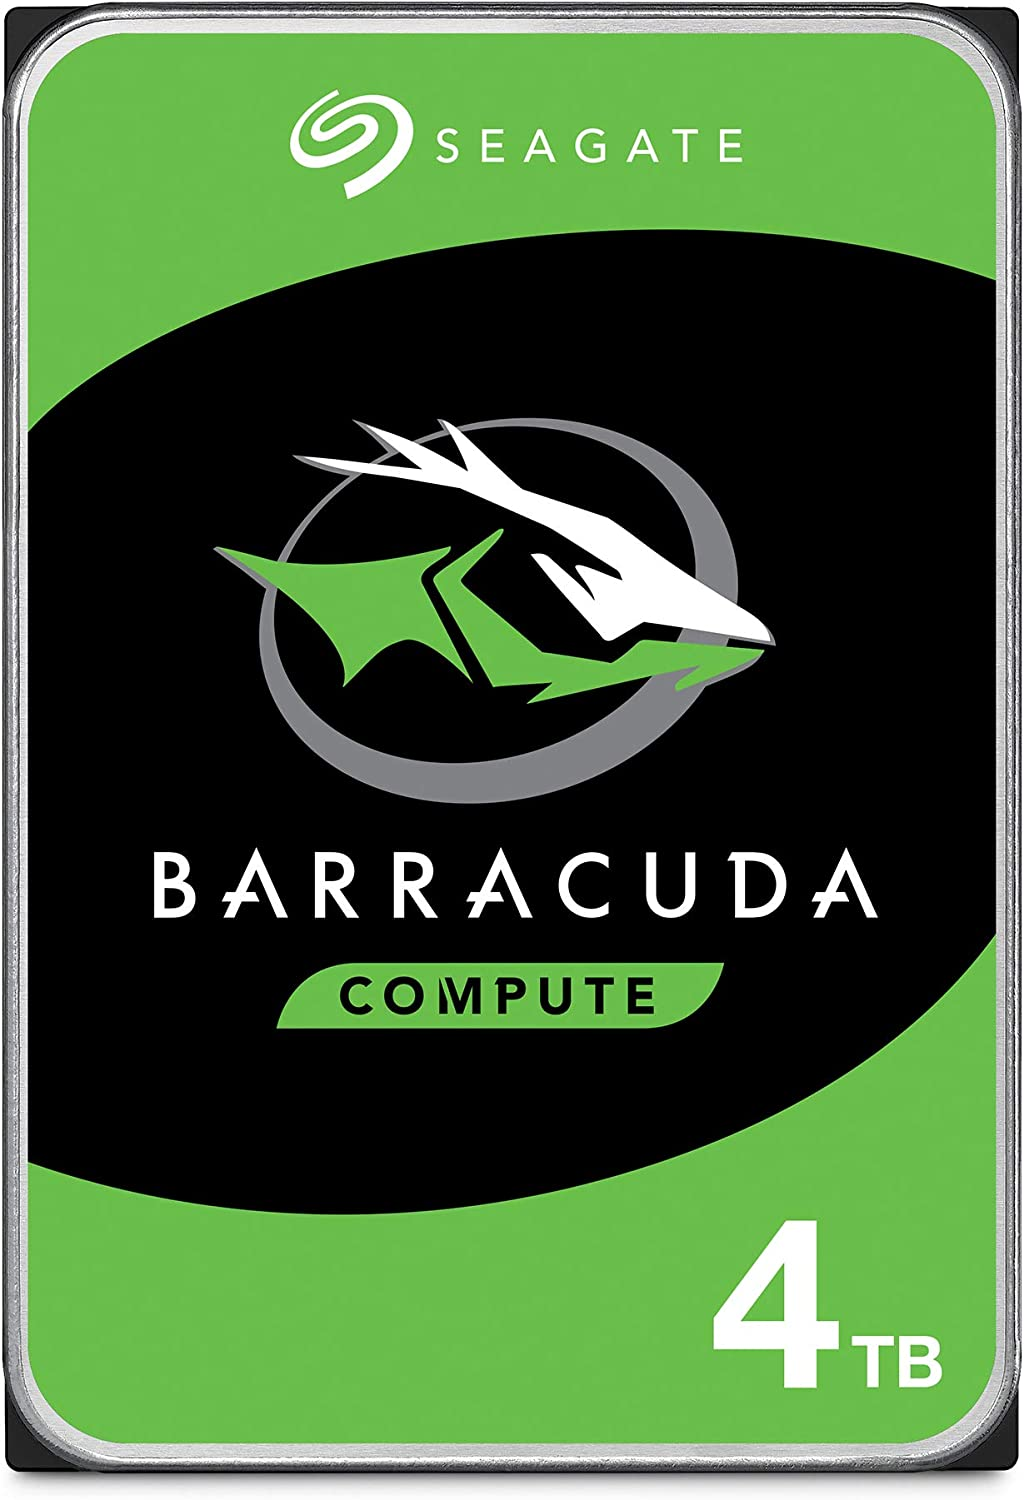 Seagate BarraCuda 4TB Internal Hard Drive HDD – 3.5 Inch Sata 6 Gb/s 5400 RPM 256MB Cache for Computer Desktop PC – Frustration Free Packaging ST4000DMZ04/DM004